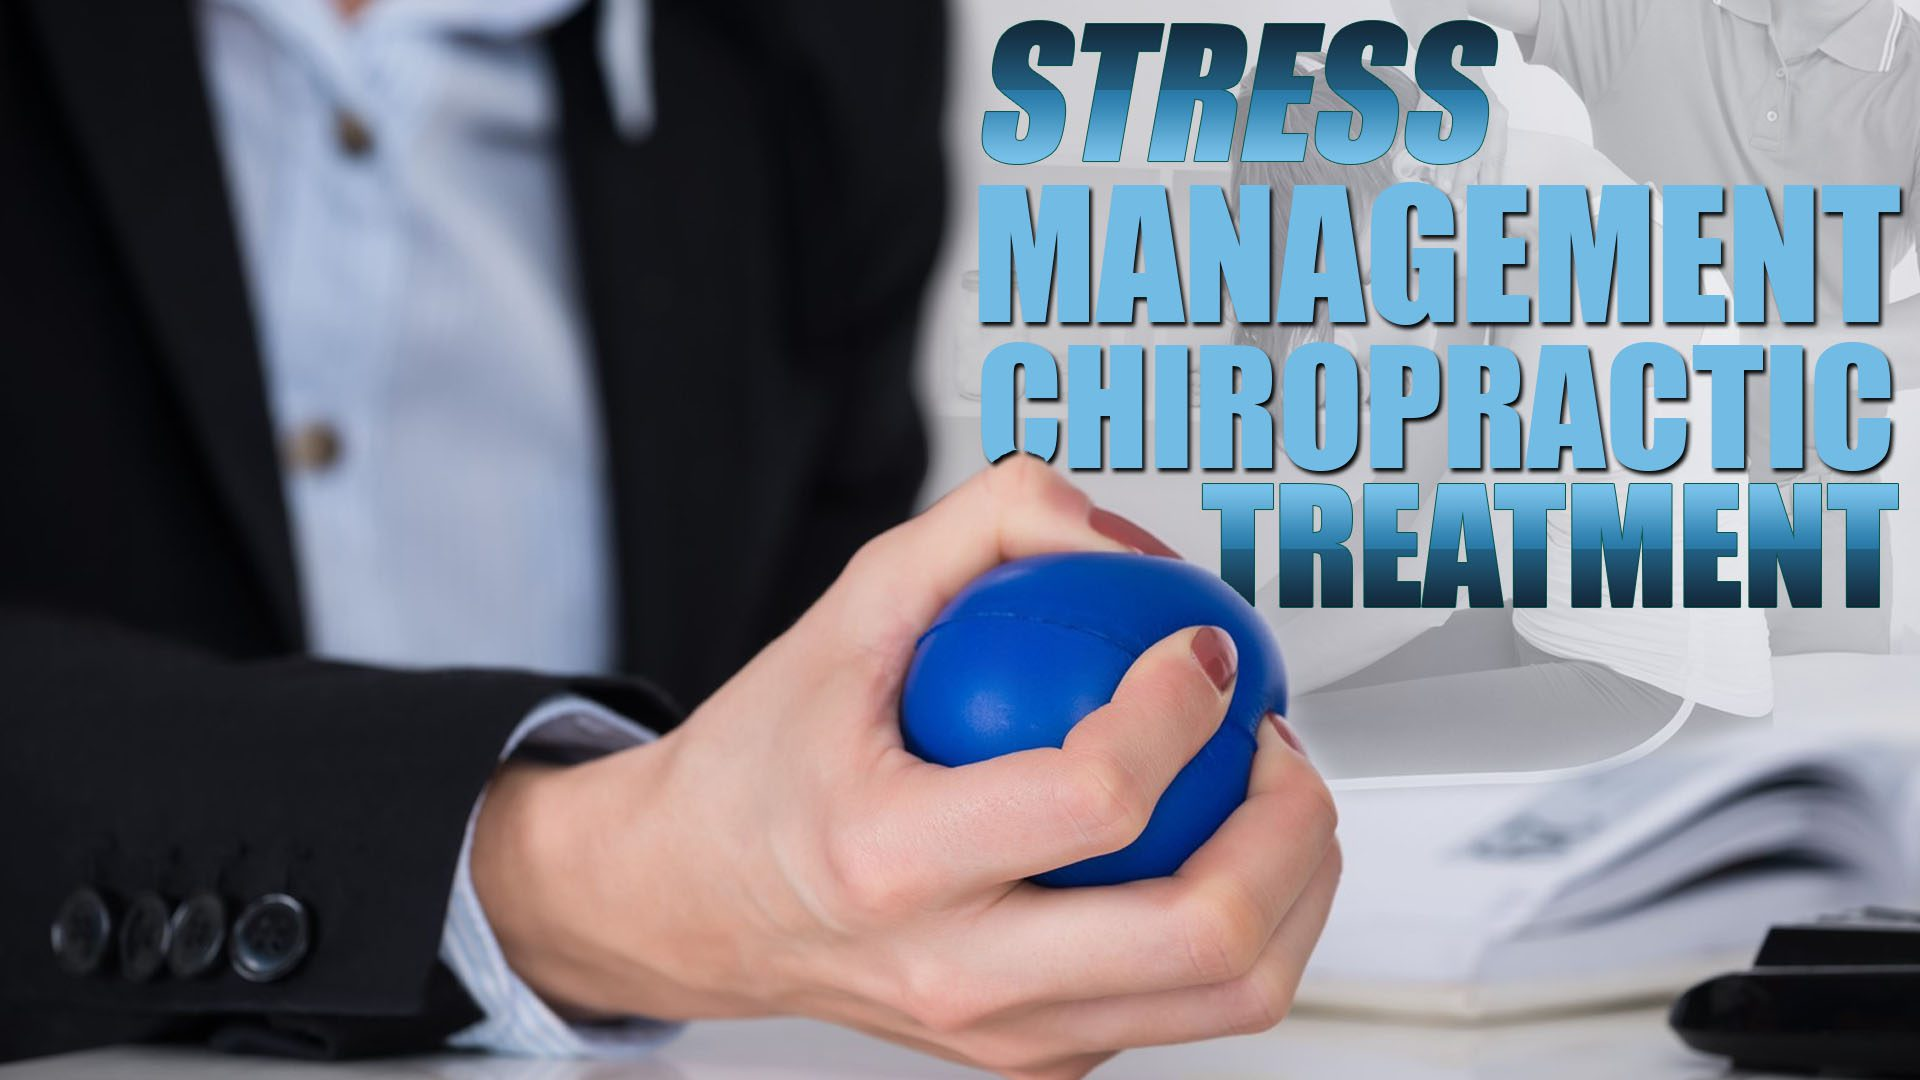 Image Of A Person Holding Stress Ball As Part Management Chiropractic Treatment